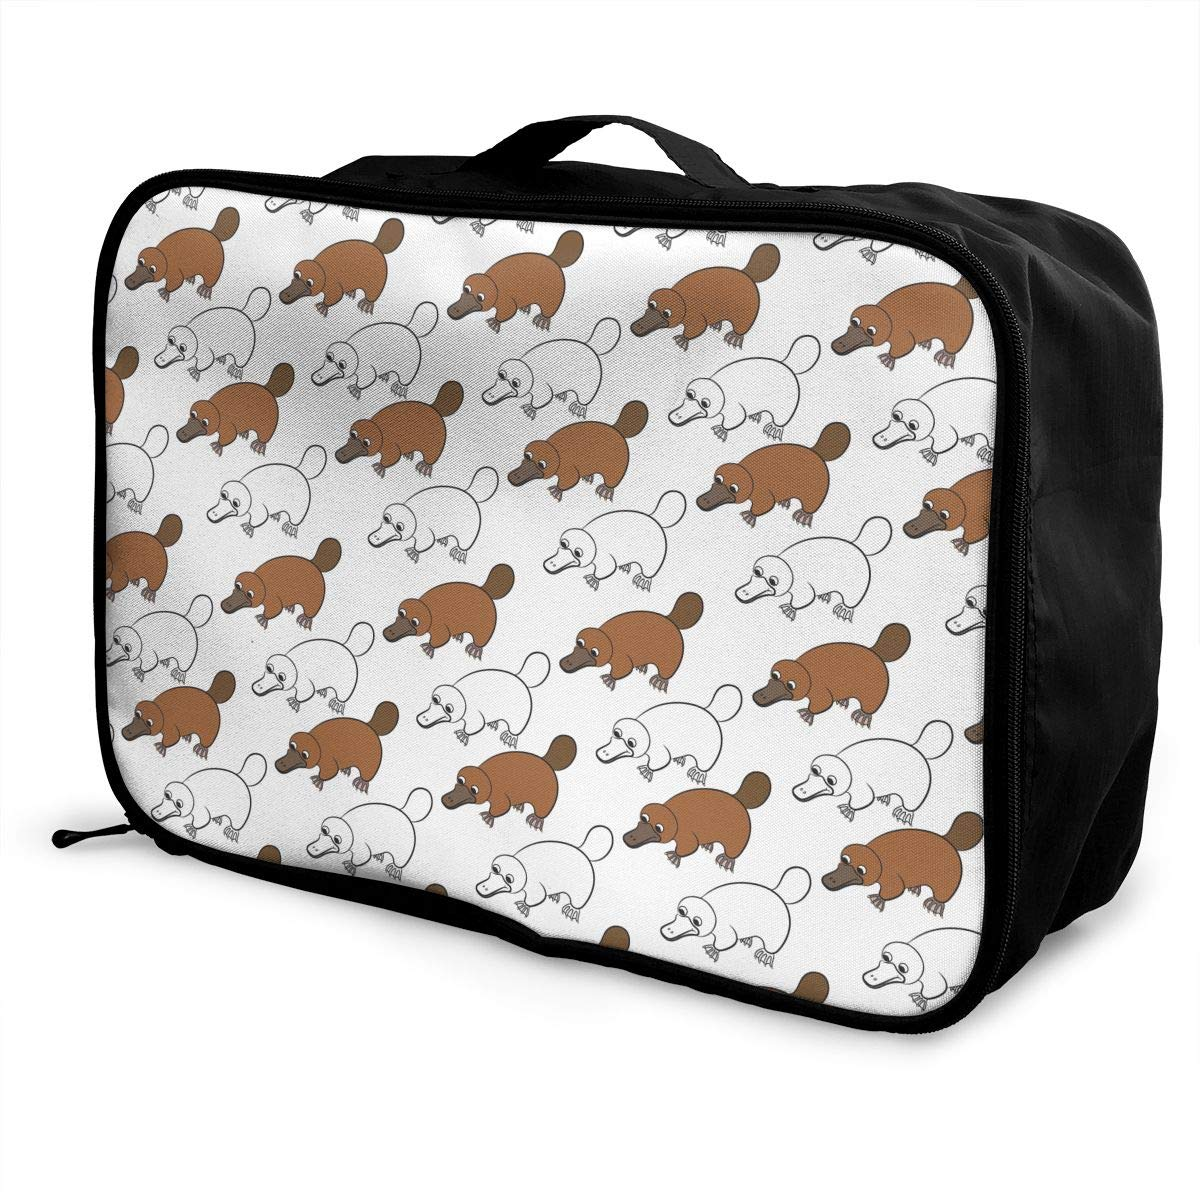 Platypus Duckbill Pattern Travel Fashion Lightweight Large Capacity Duffel Portable Waterproof Foldable Storage Carry Luggage Tote Bag